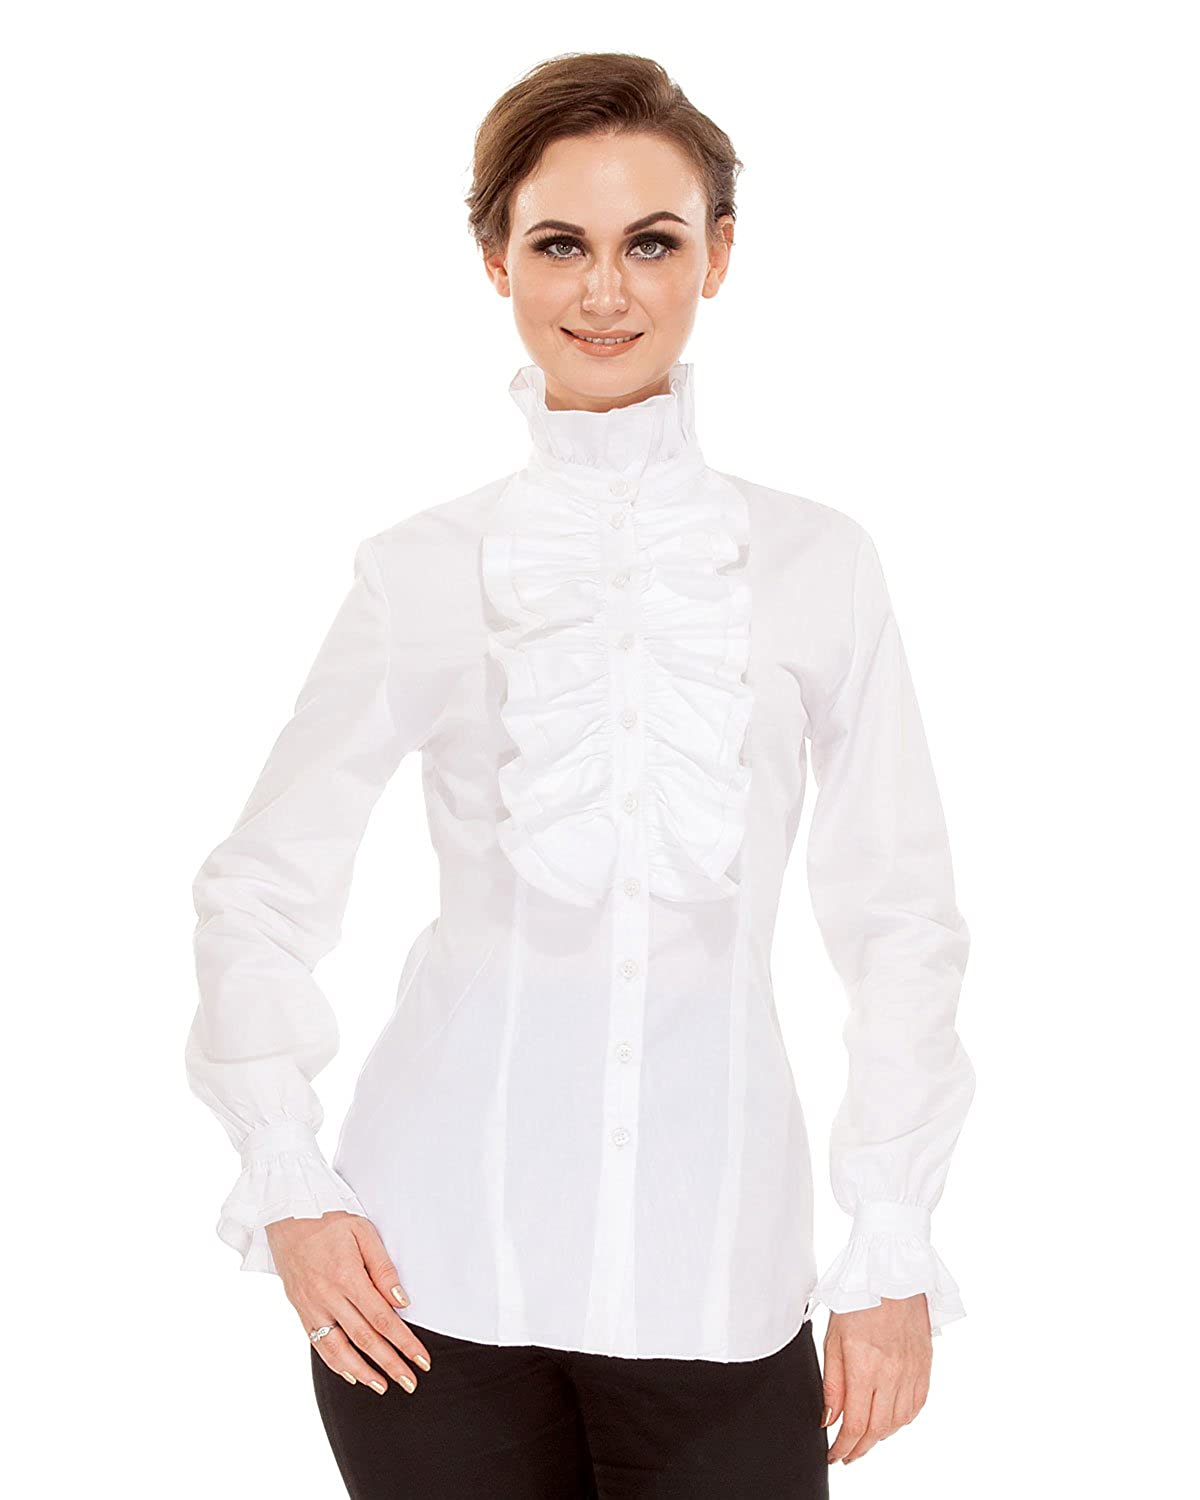 Edwardian Blouses | White & Black Lace Blouses & Sweaters ThePirateDressing Steampunk Gothic Victorian Cosplay Costume Womens Stand-up Collar 100% Cotton Blouse Shirt $37.95 AT vintagedancer.com